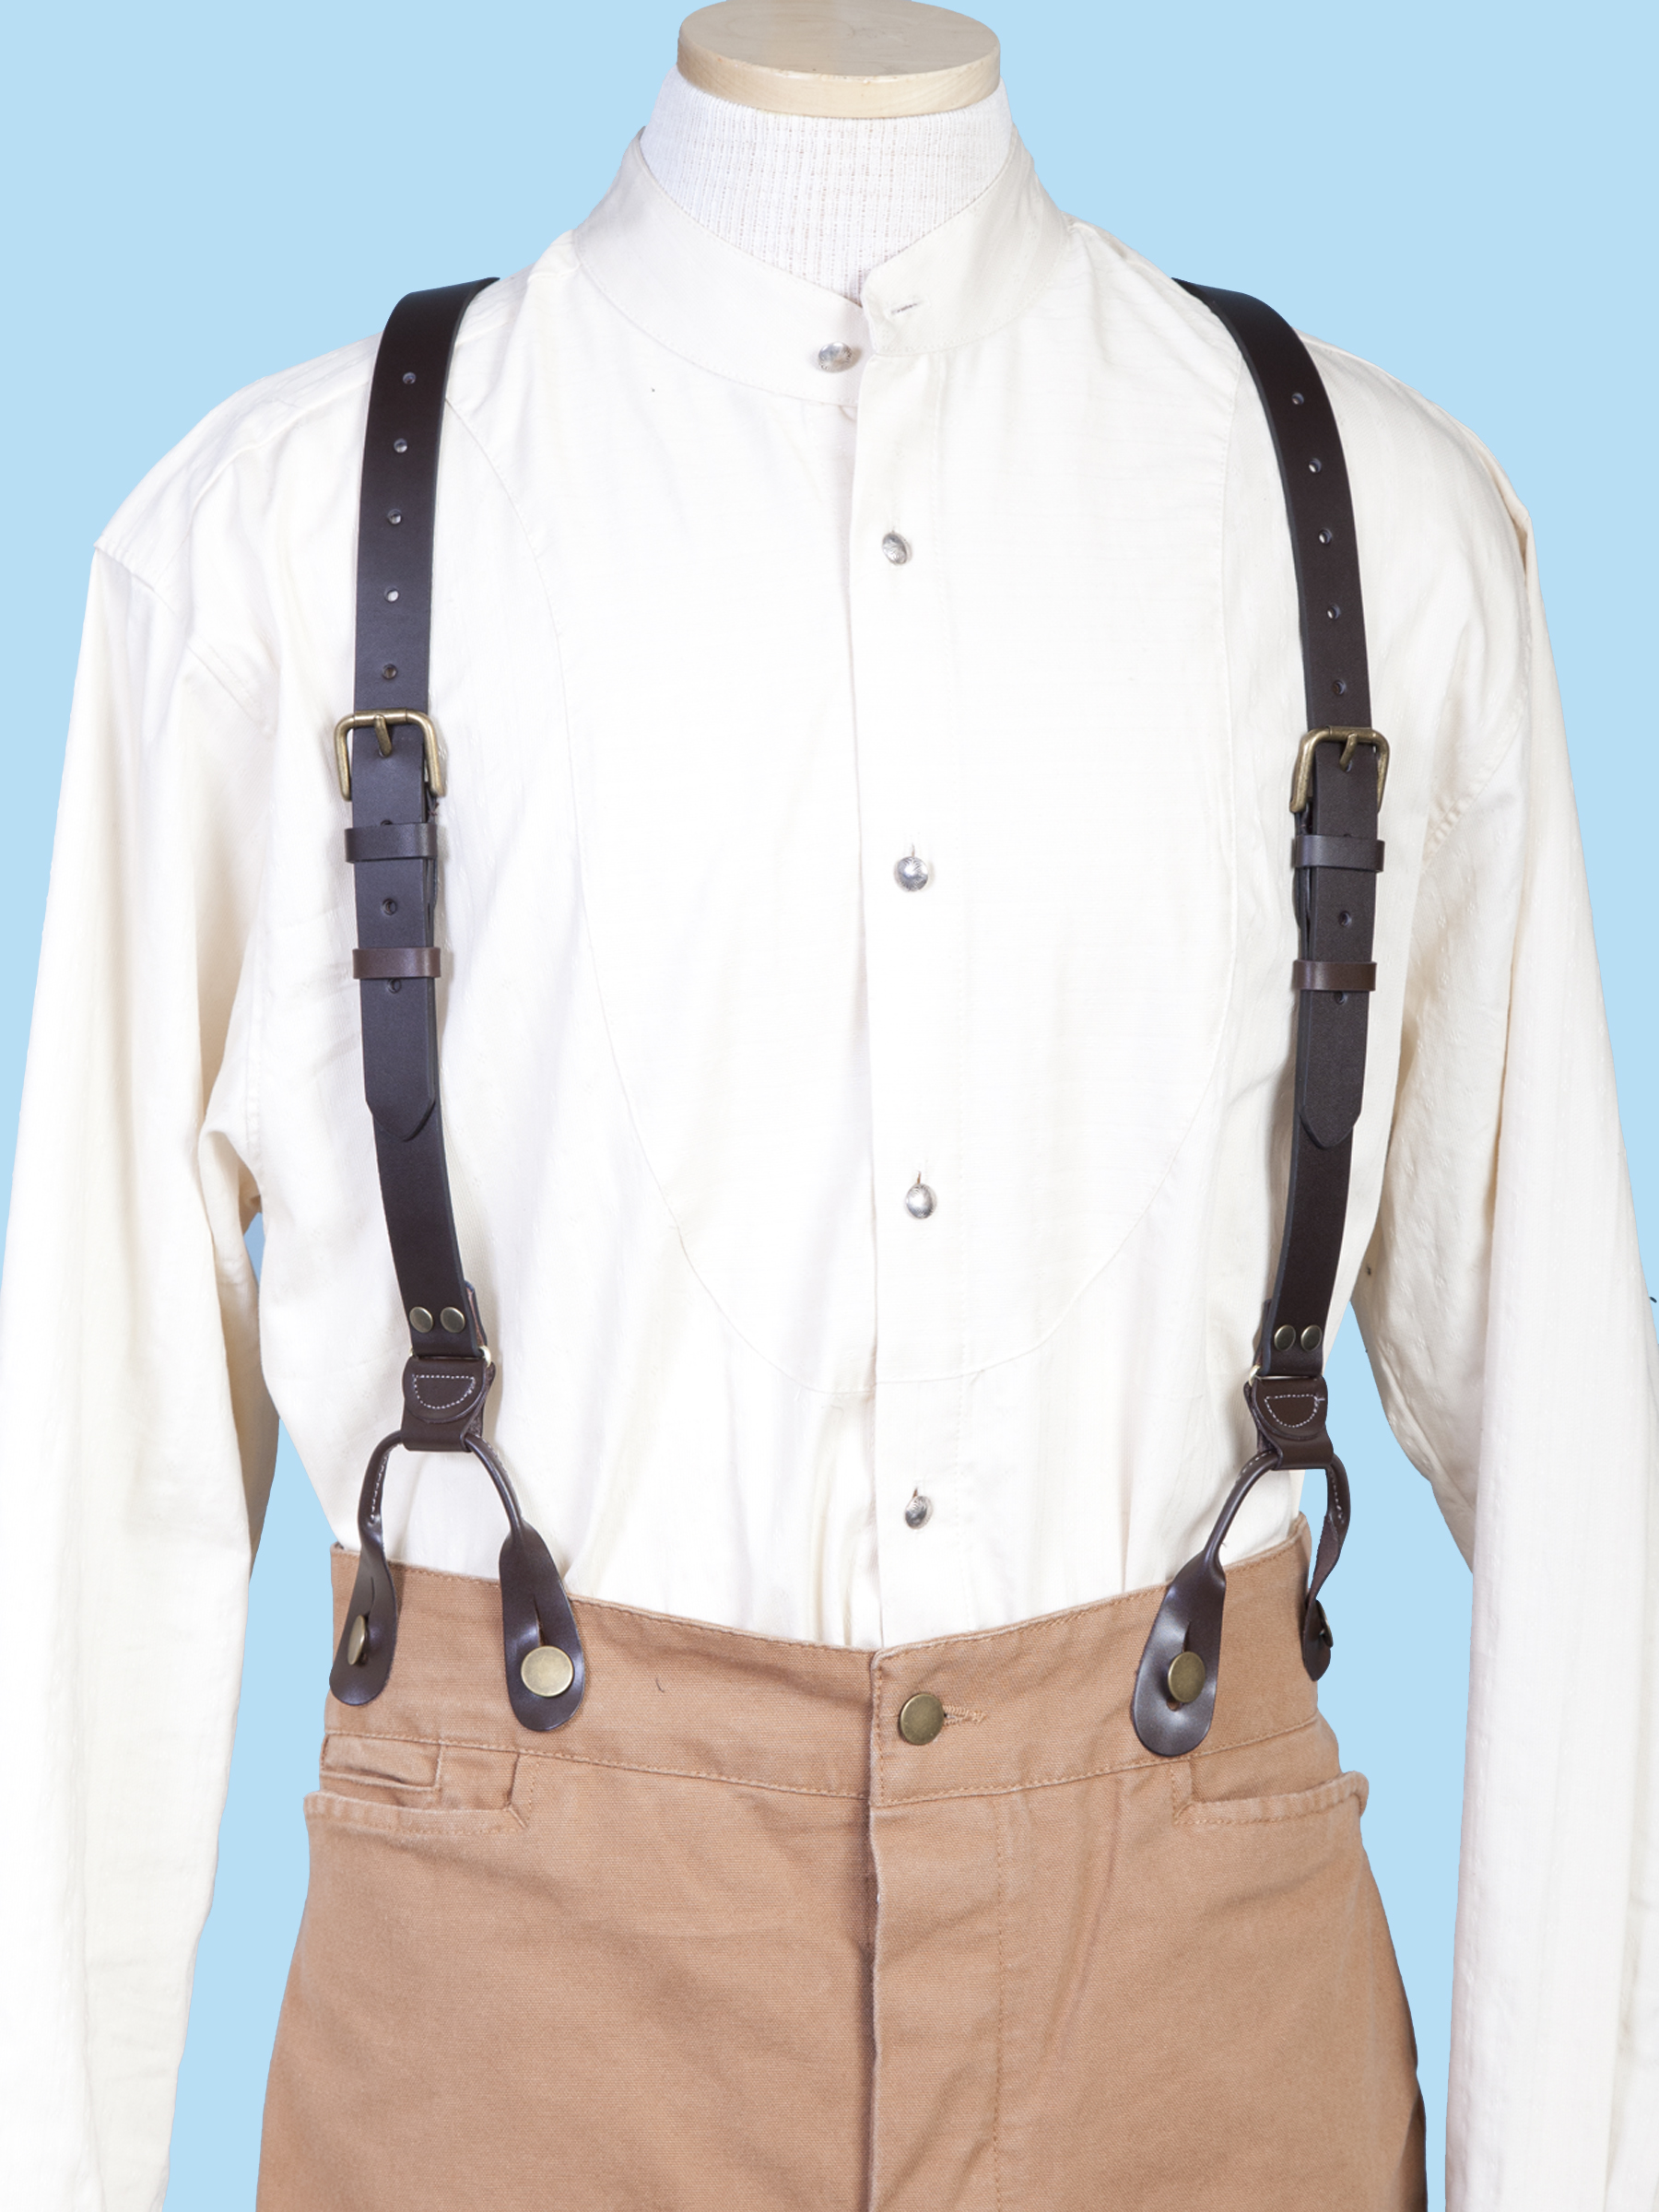 1' LEATHER SUSPENDERS 48' LONG